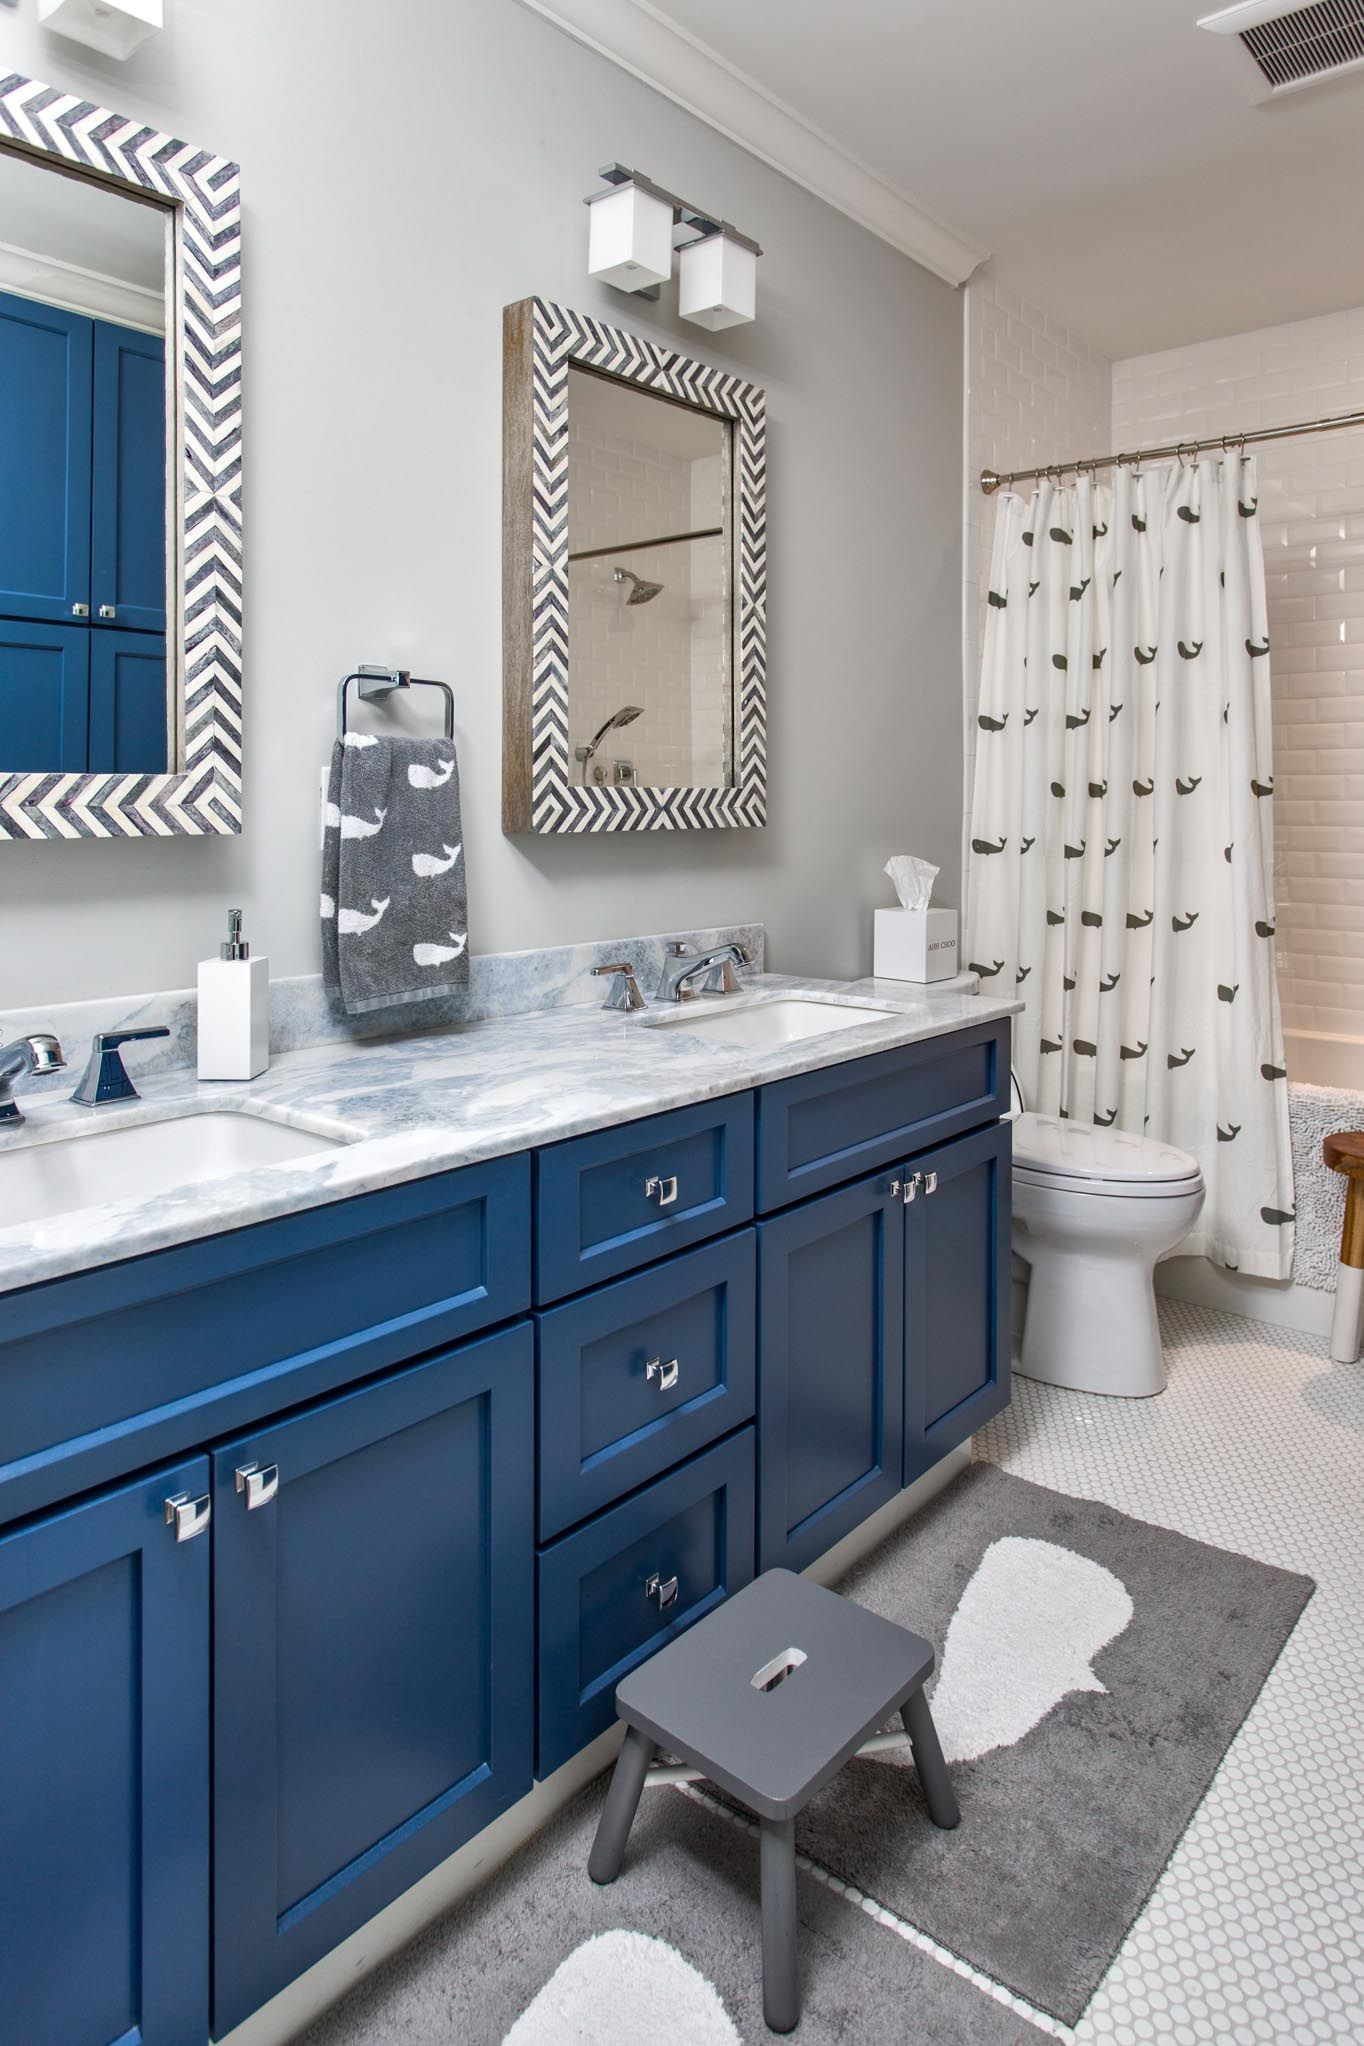 Coastal Bathroom With Gray White And Navy Cabinets Whales And Chevron Patterns Boys Bathroom Decor Kid Bathroom Decor Bathroom Interior